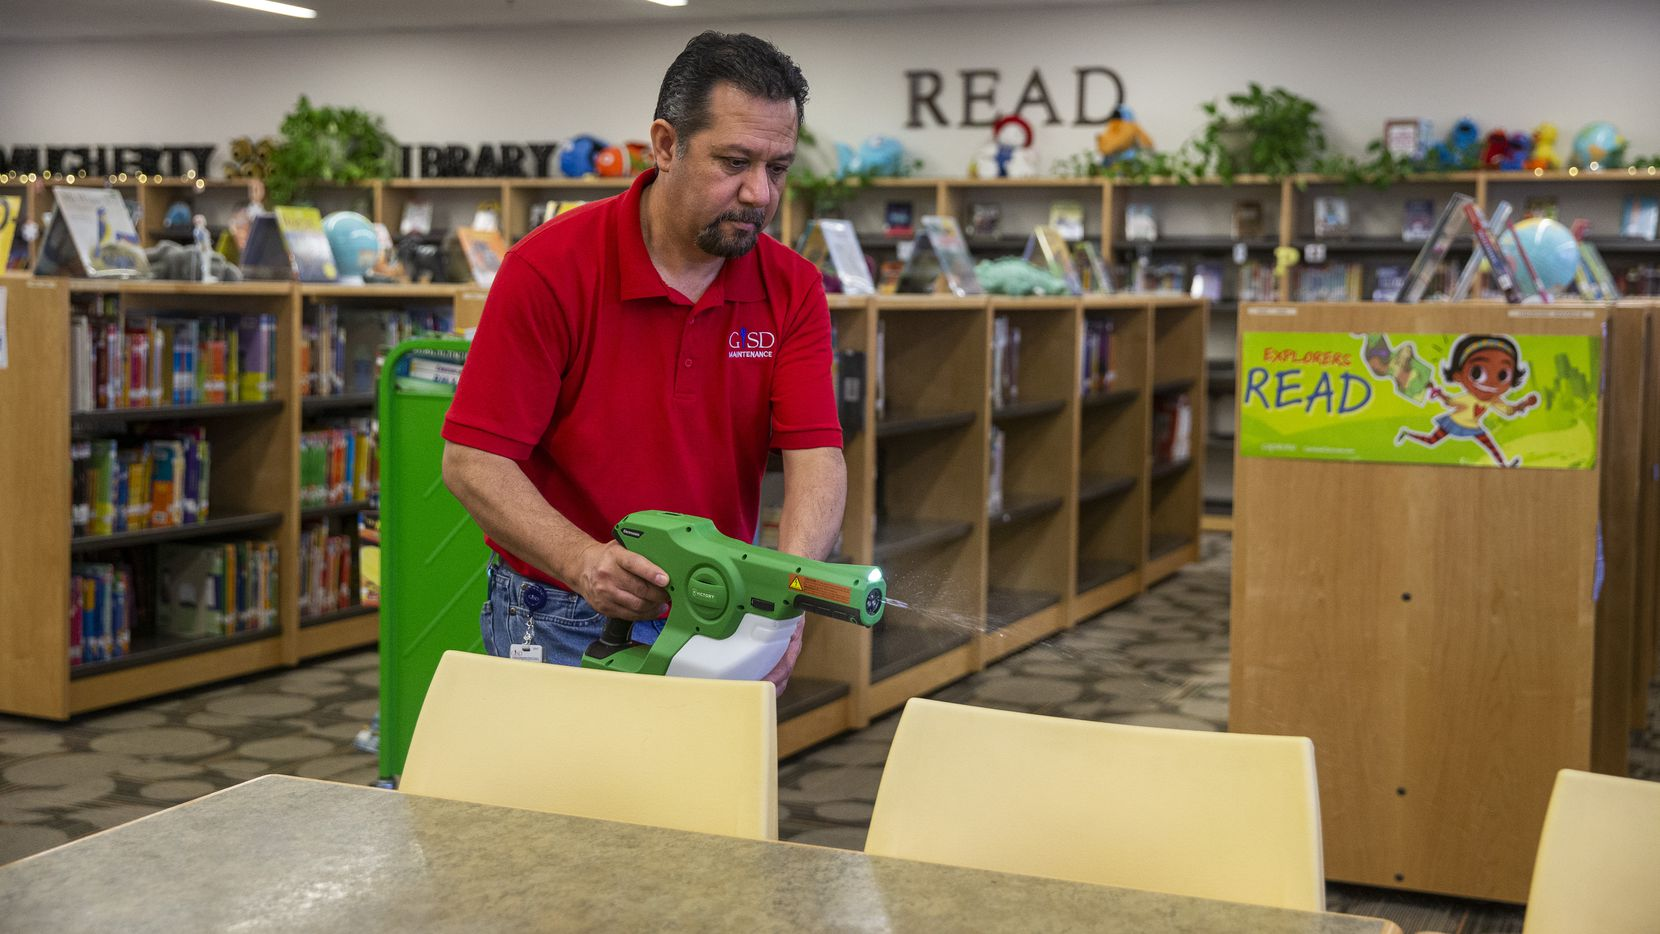 Raúl Rodríguez uses an electrostatic mist in the library at Garland ISD's Daugherty Elementary School to disinfect it of any harmful pathogens and viruses in Garland, Texas, on Wednesday, Jan. 15, 2020. A similar strategy will be applied at campuses if the novel coronavirus reaches schools.